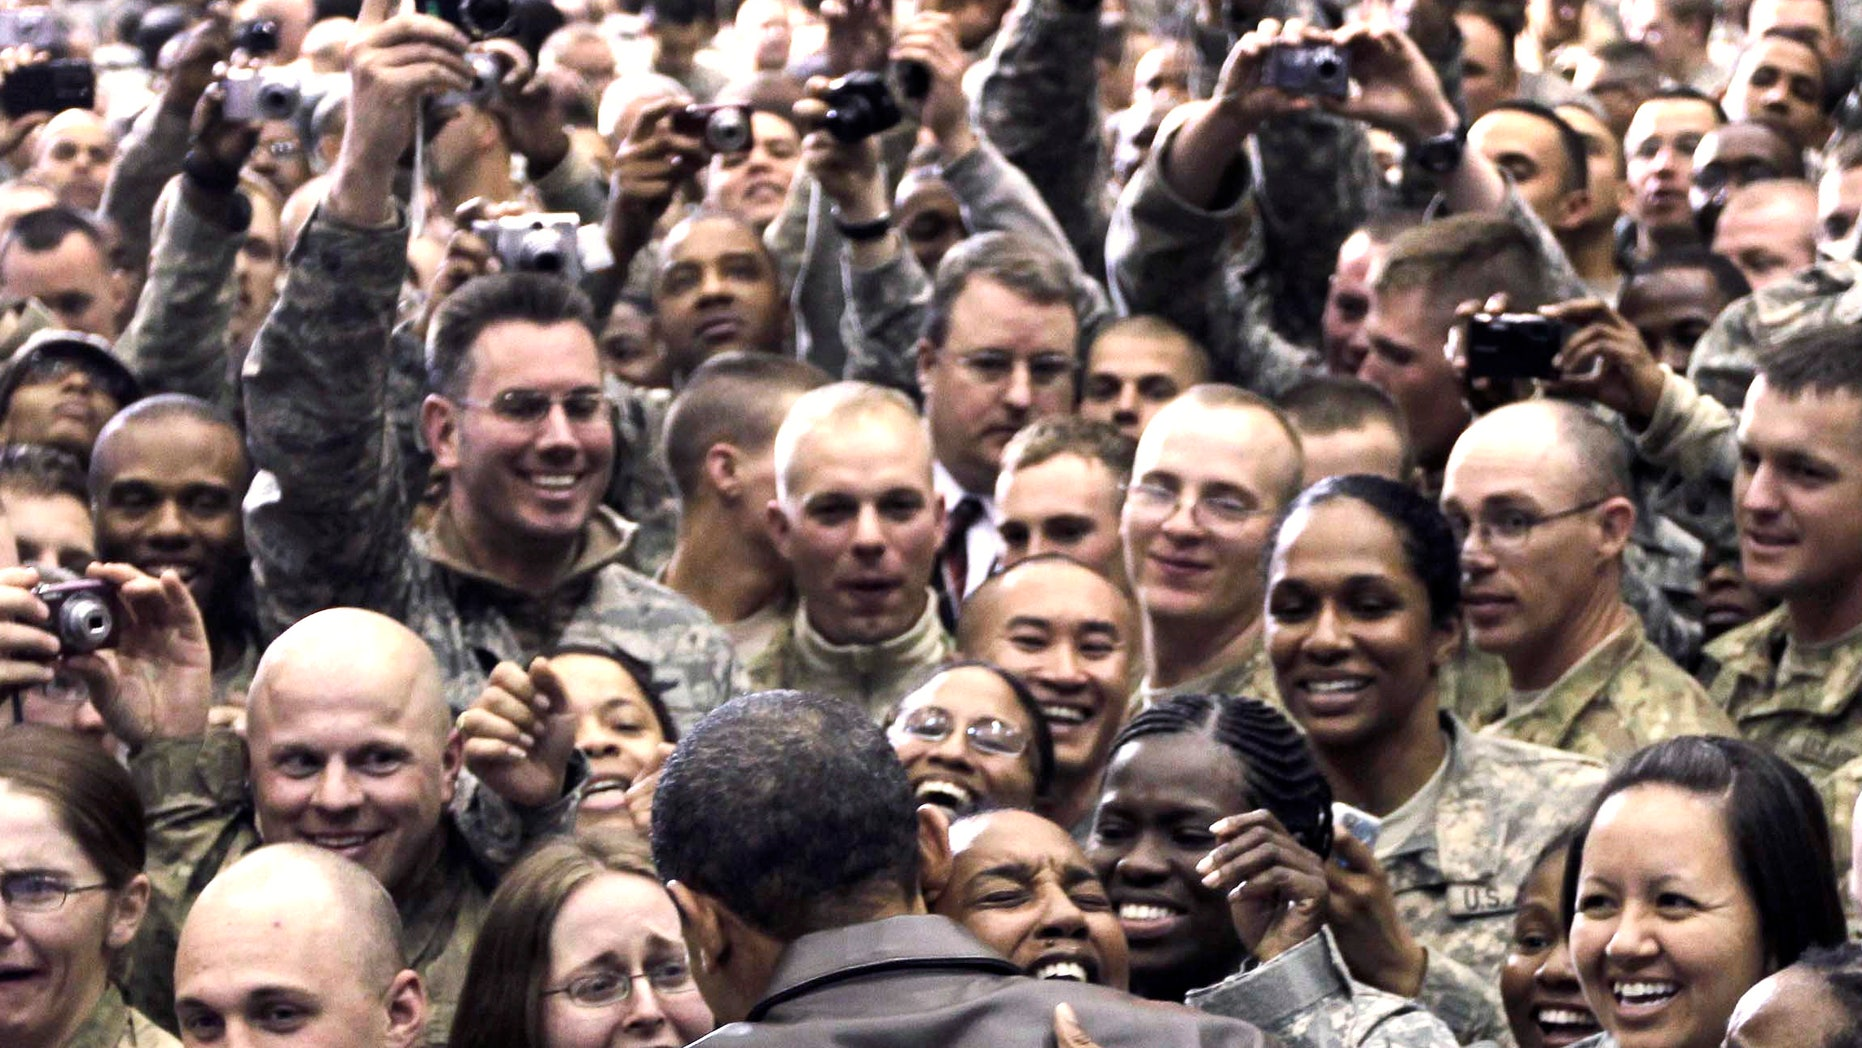 Dec. 3: Obama greets troops at a rally during an unannounced visit at Bagram Air Field in Afghanistan.